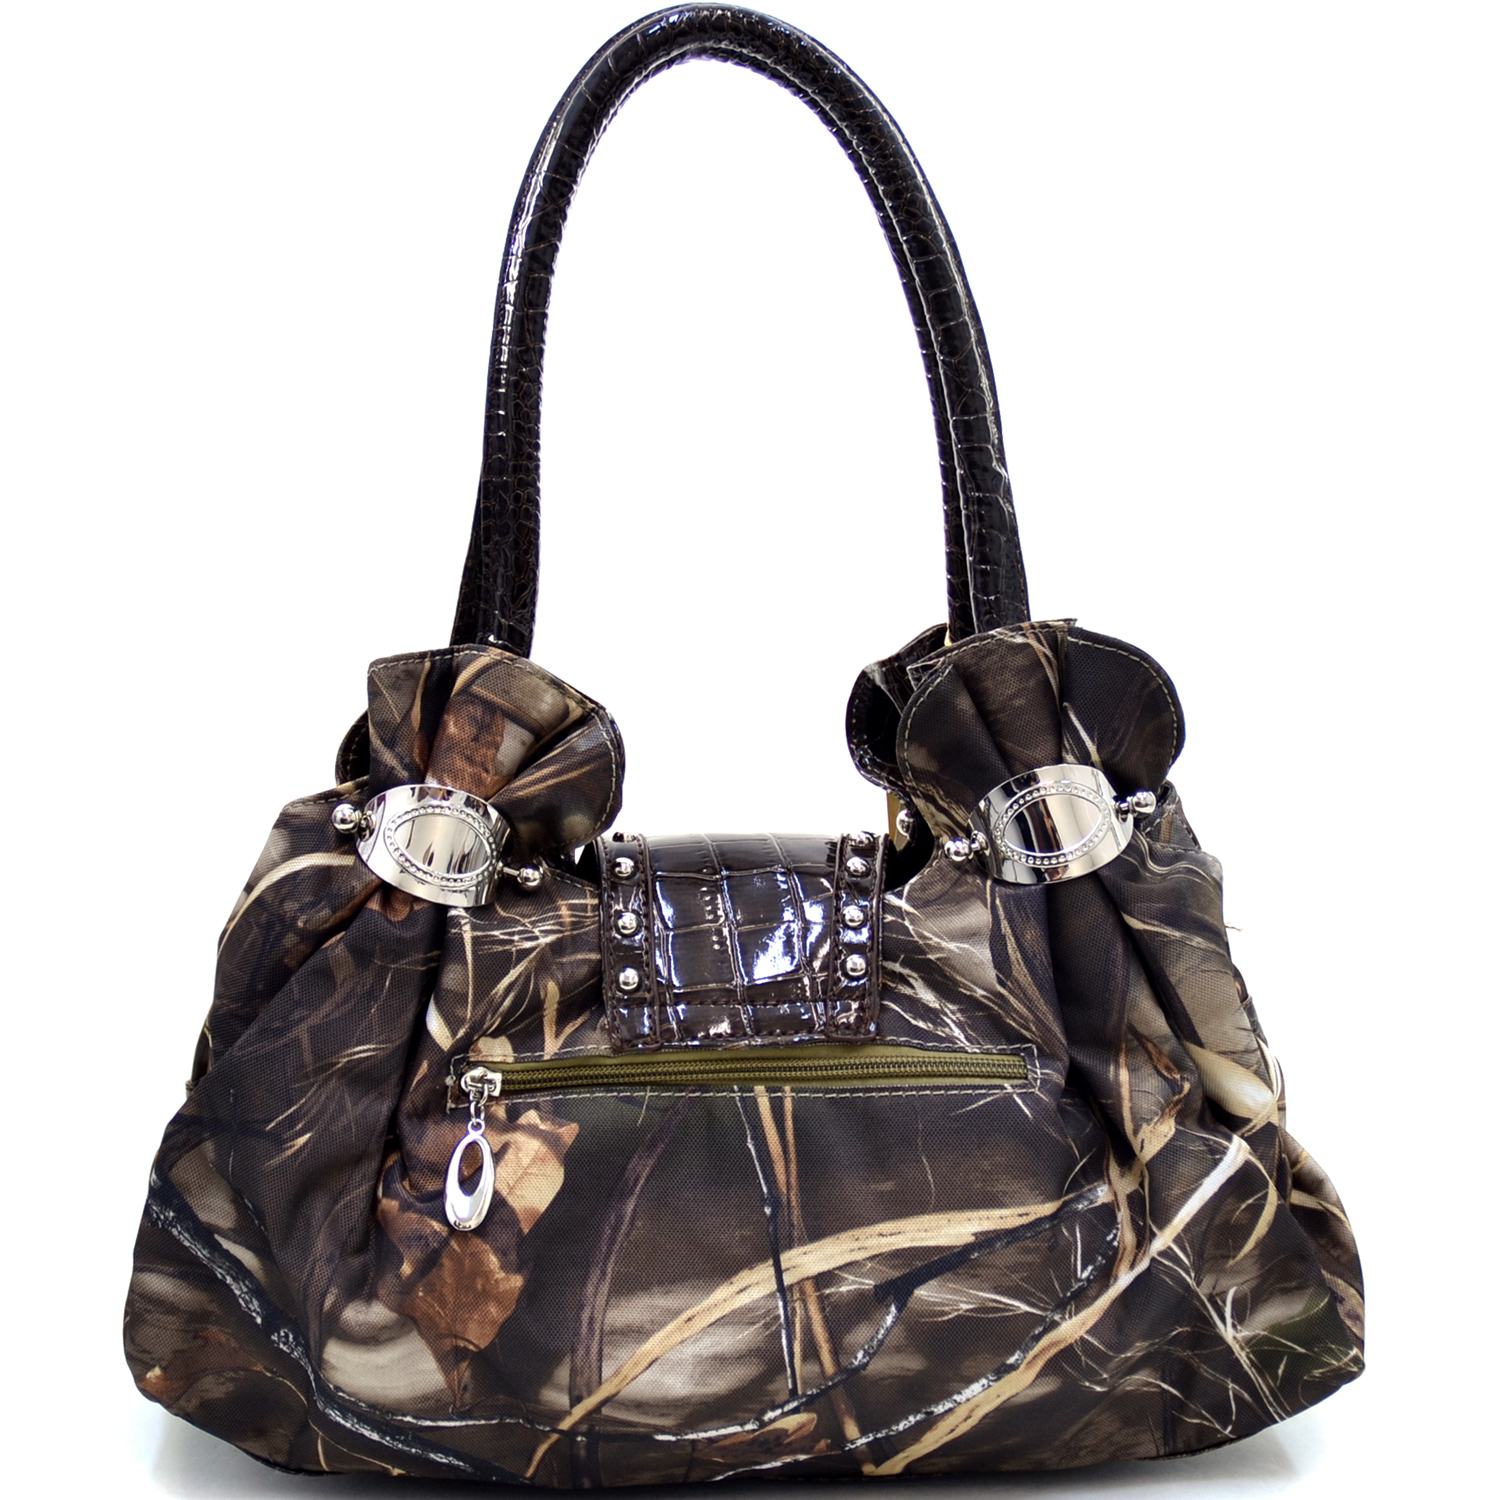 Realtree® Max-4 Camo Rhinestone Cross Satchel